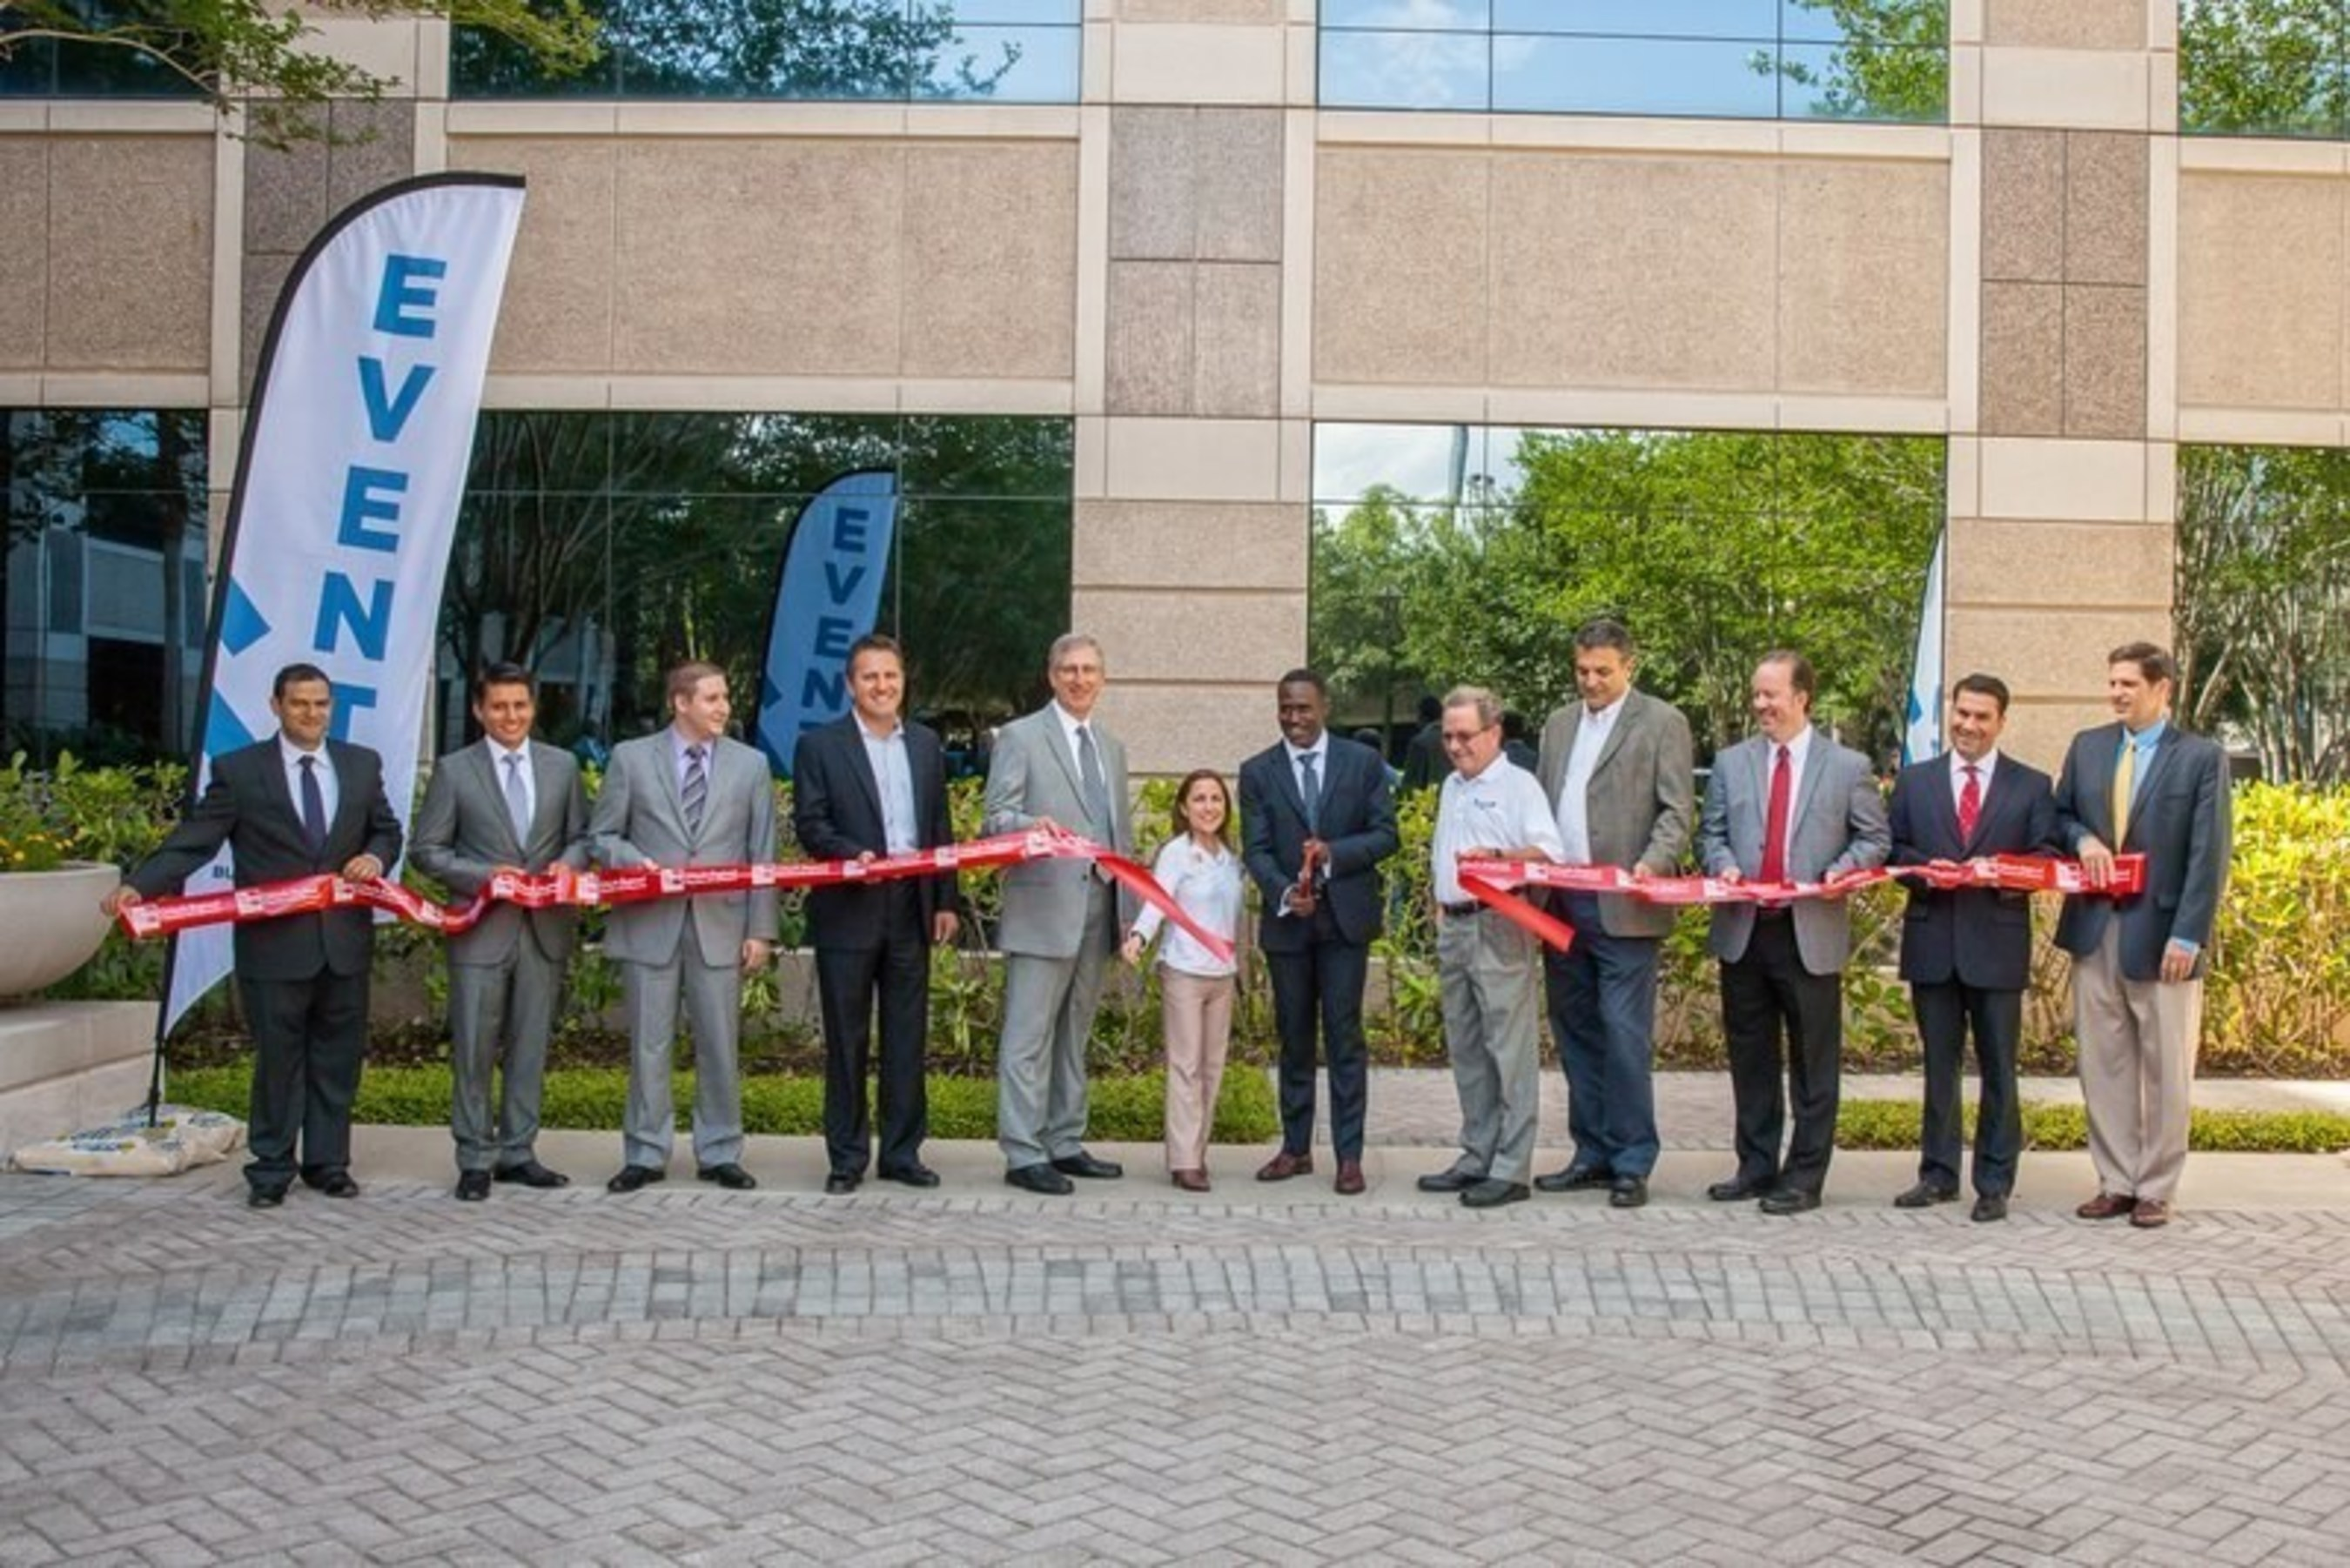 Maitland Mayor Dale McDonald and Seminole County Commissioner Bob Dallari joined Oko Buckle and his fellow employee-owners from award-winning AEC firm, Burns & McDonnell, to celebrate the opening of the firm's newest regional office in Greater Orlando.